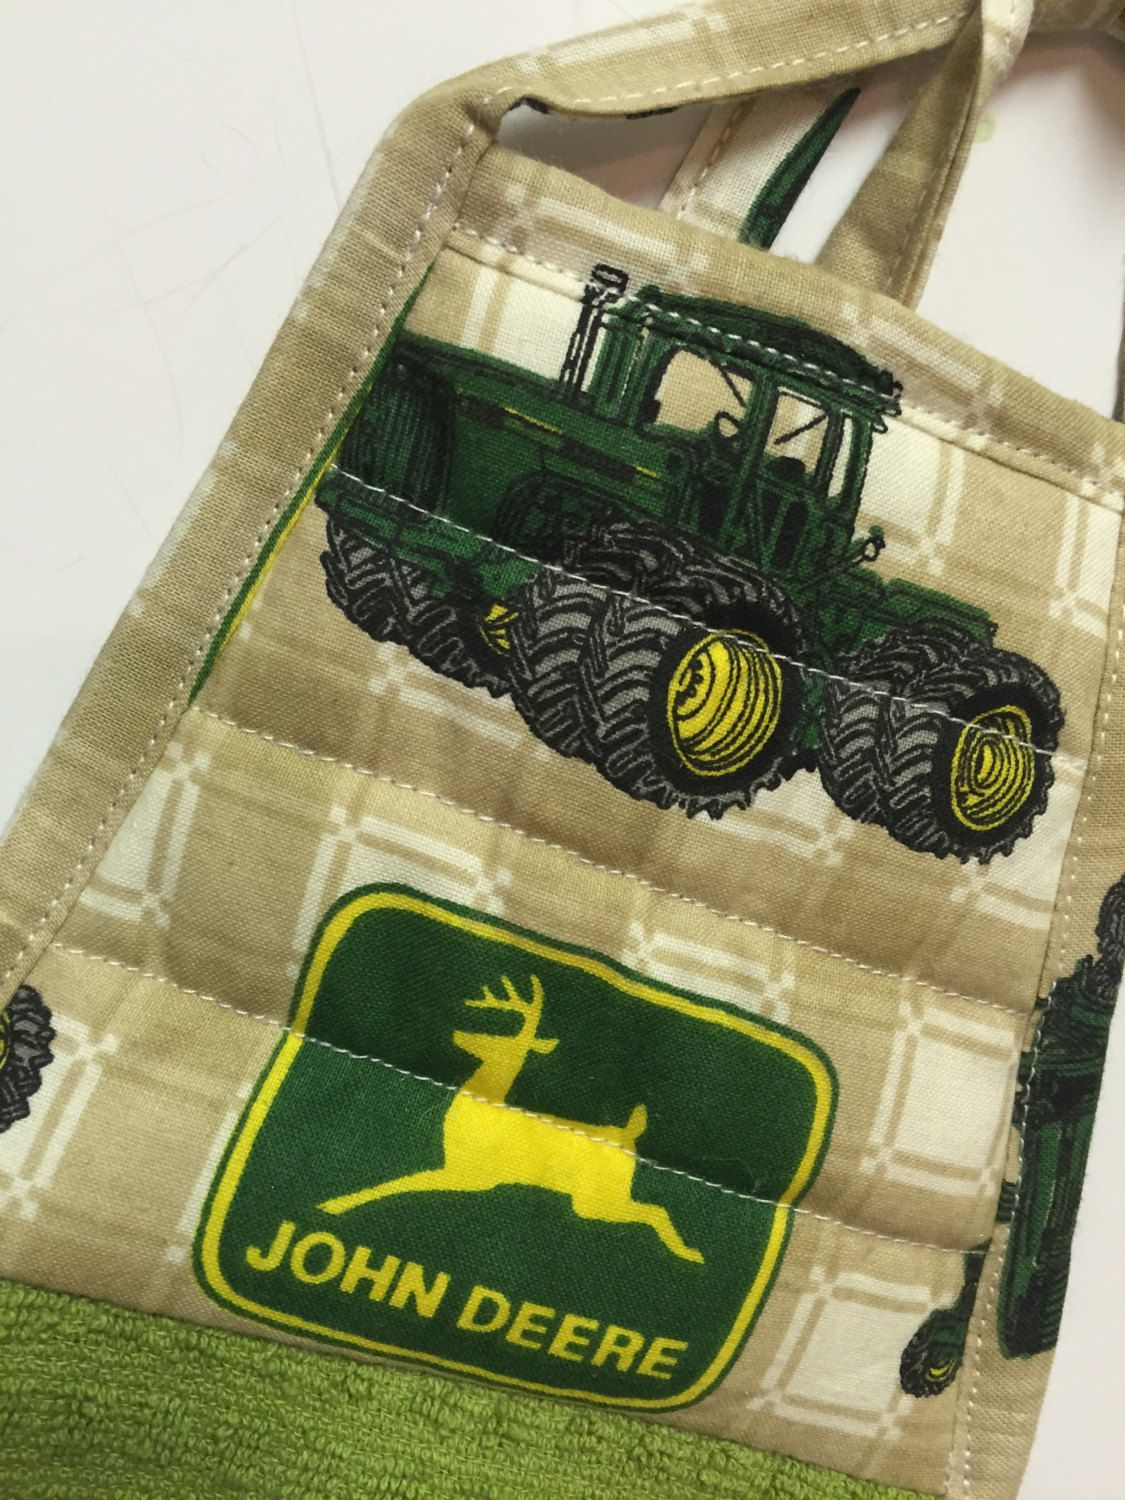 john deere hanging kitchen towel father's day dad gift green towel